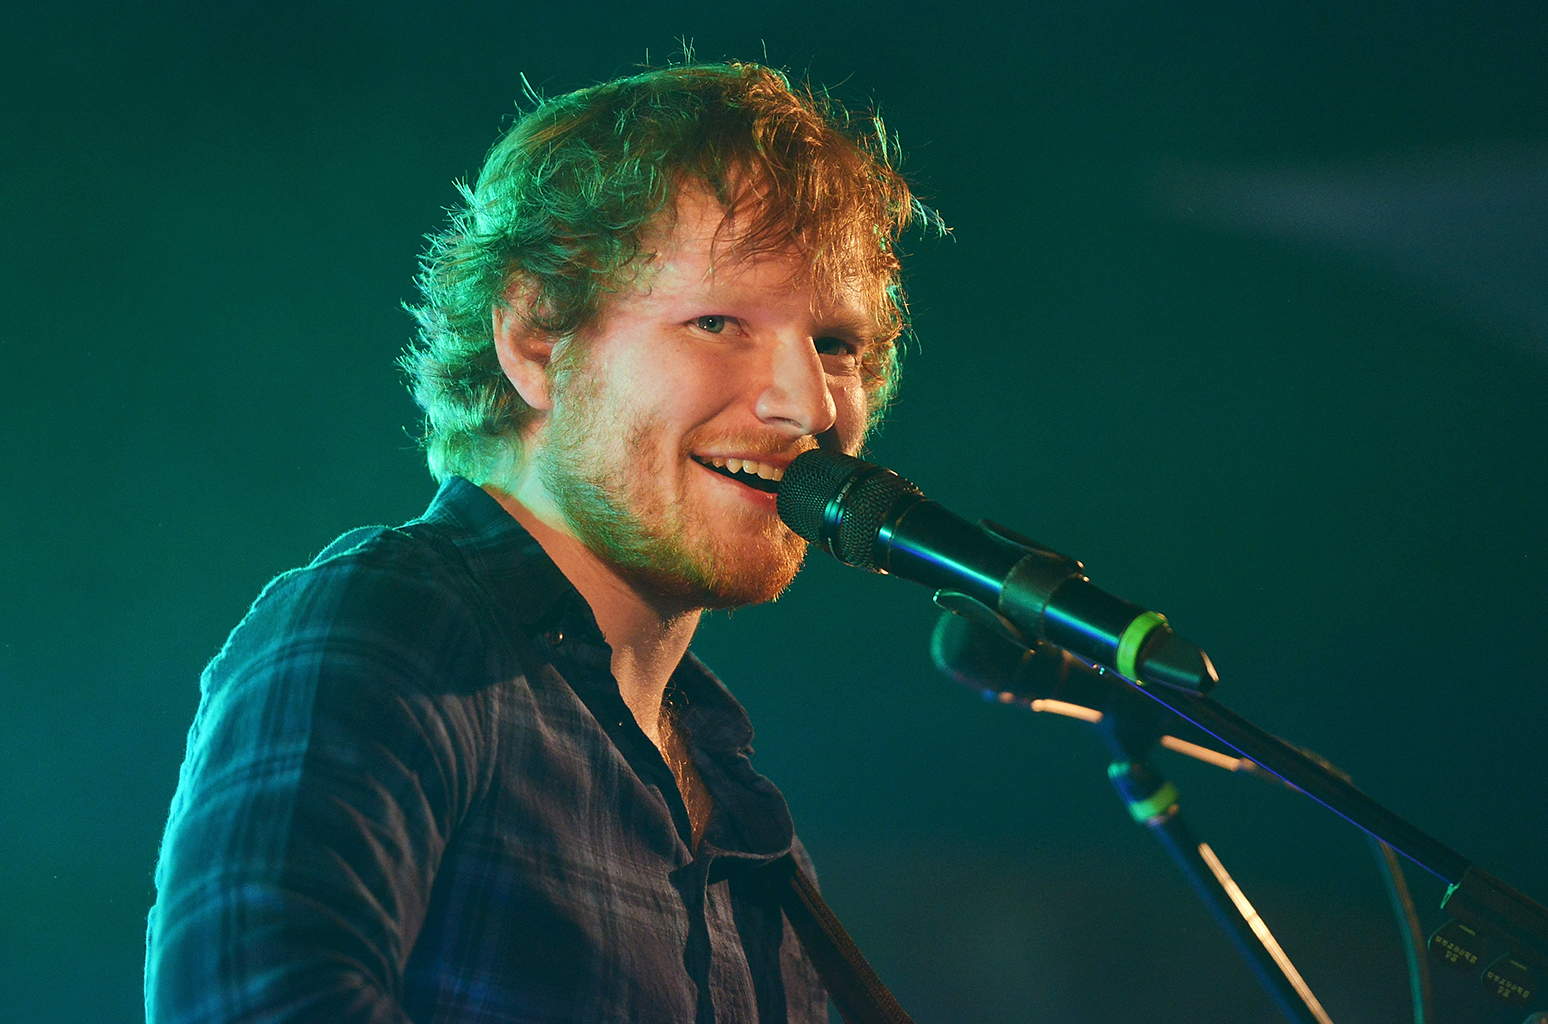 SOUTHWOLD, ENGLAND - JULY 17: Ed Sheeran performs on day 2 of Latitude Festival at Henham Park Estate on July 17, 2015 in Southwold, England. (Photo by Dave J Hogan/Getty Images)